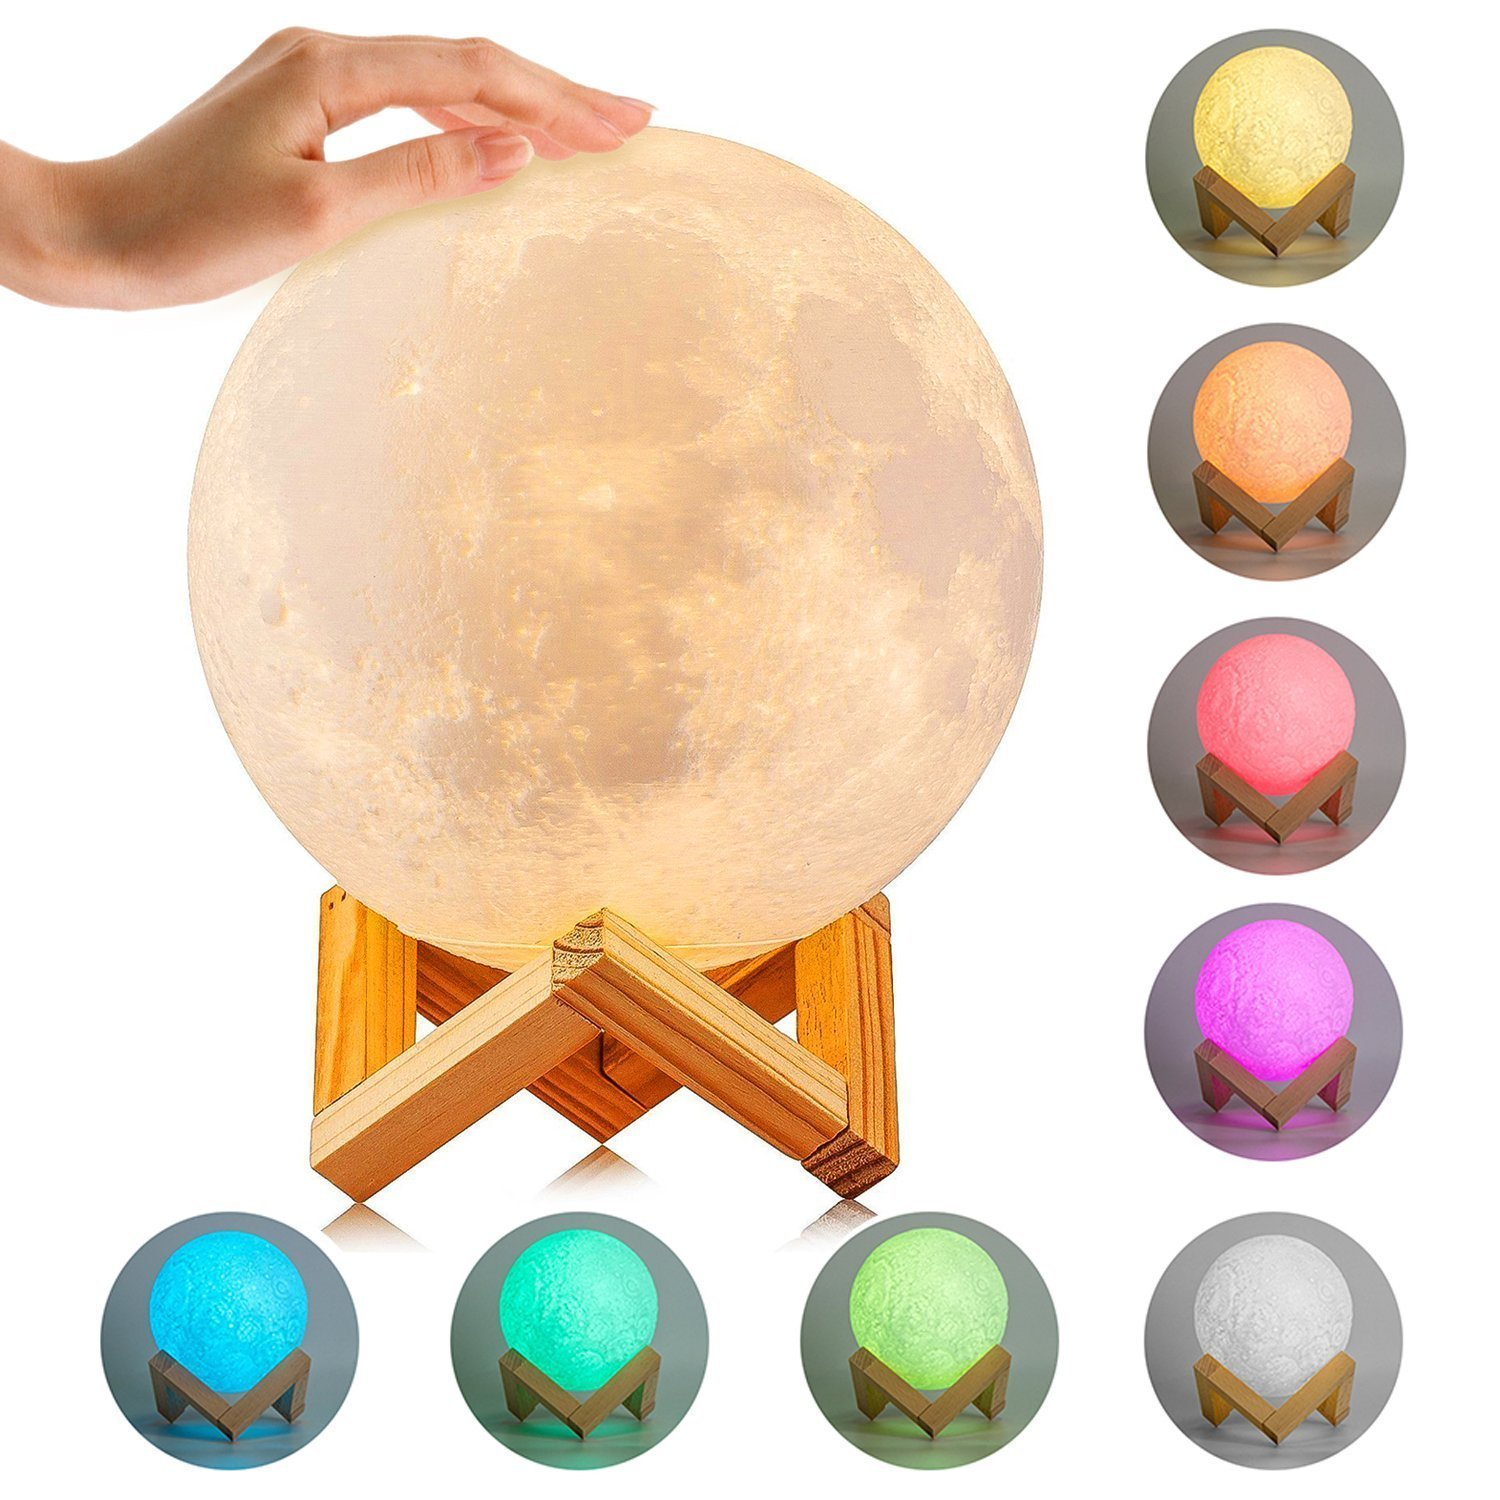 Moon Lamp, ICOCO 3D Printing Moon Light, Dimmable Touch Control LED Night Light 8 Colors, USB Rechargeable Home Decorative Light Lamps for Creative Gift with Wooden Holder 5.9 Inch